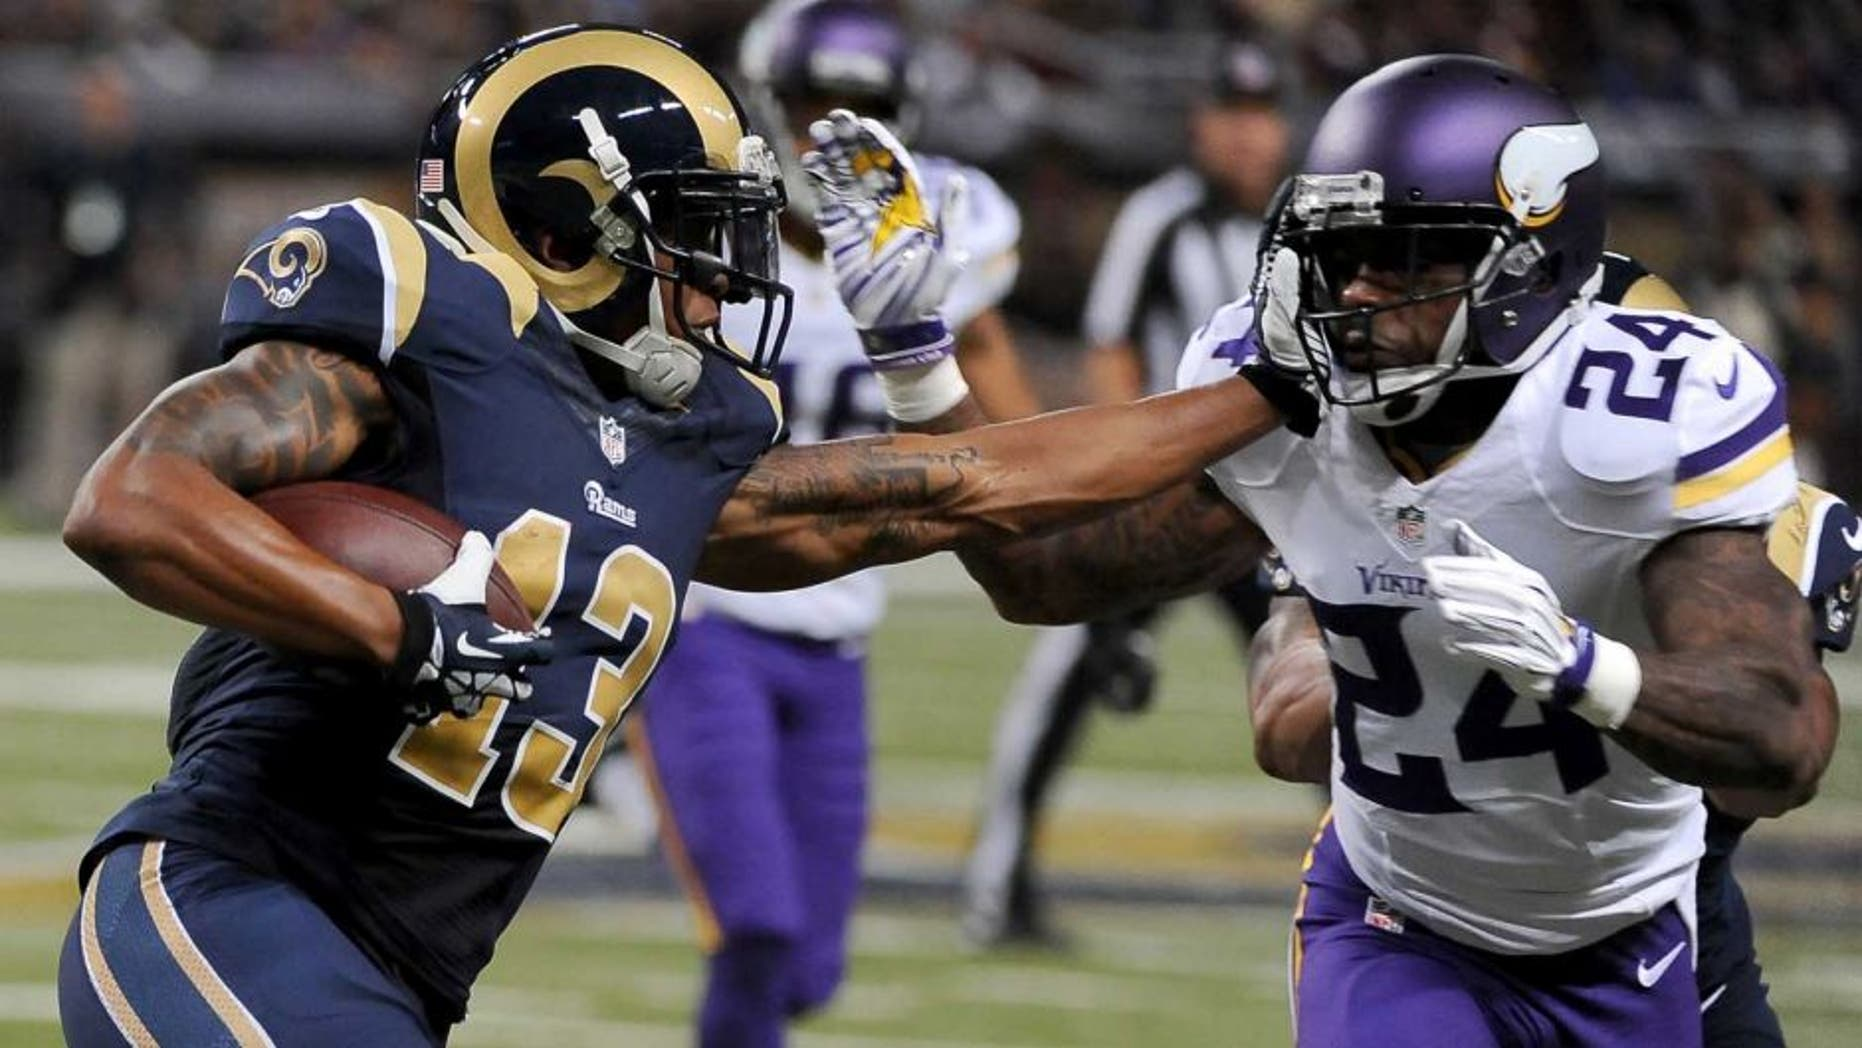 St. Louis Rams wide receiver Chris Givens (left) runs with the ball for a 4-yard gain before being stopped by Minnesota Vikings cornerback Captain Munnerlyn during the second quarter in St. Louis. Munnerlyn was also given a 15-yard unnecessary roughness penalty on the play.